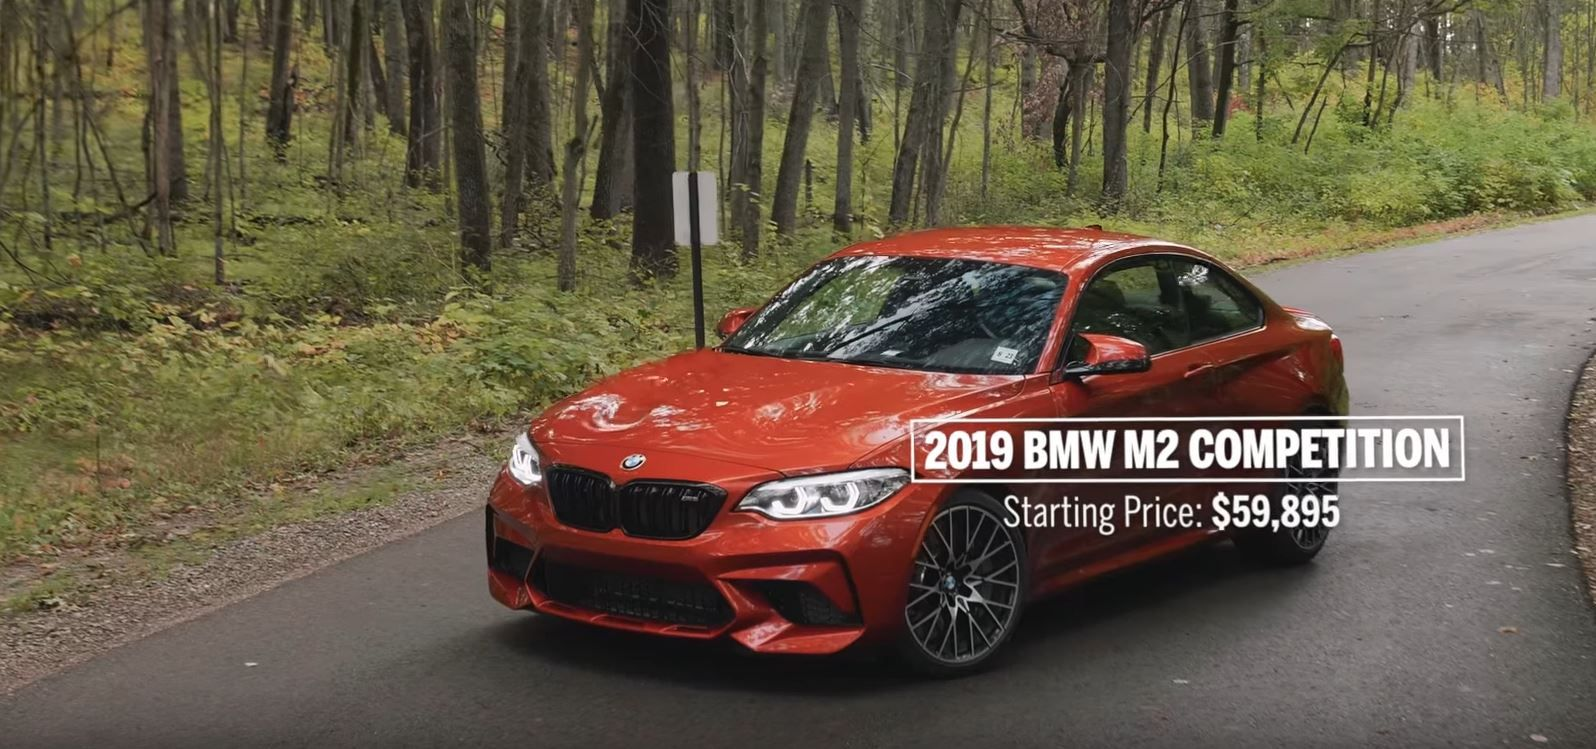 Video Car And Driver S Top 10 Cars Of 2019 Includes M2 Competition Car And Driver Car Bmw